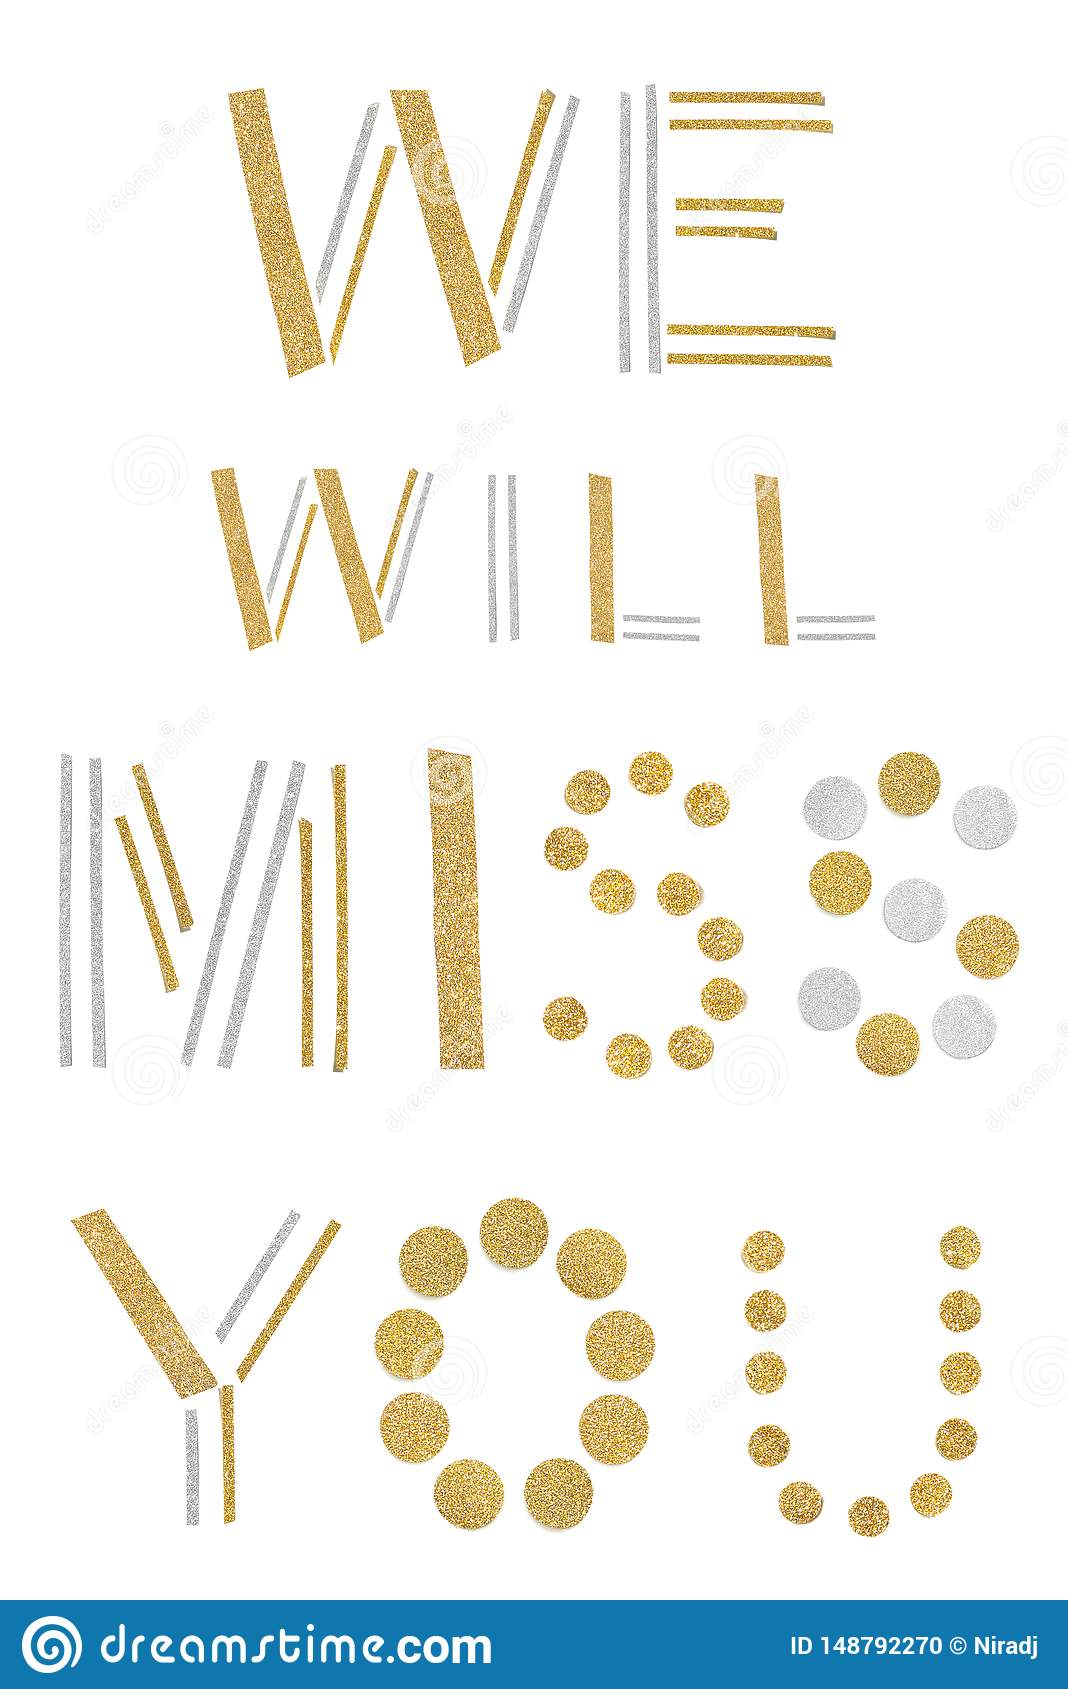 Will Miss You Stock Illustrations 55 Will Miss You Stock Illustrations Vectors Clipart Dreamstime